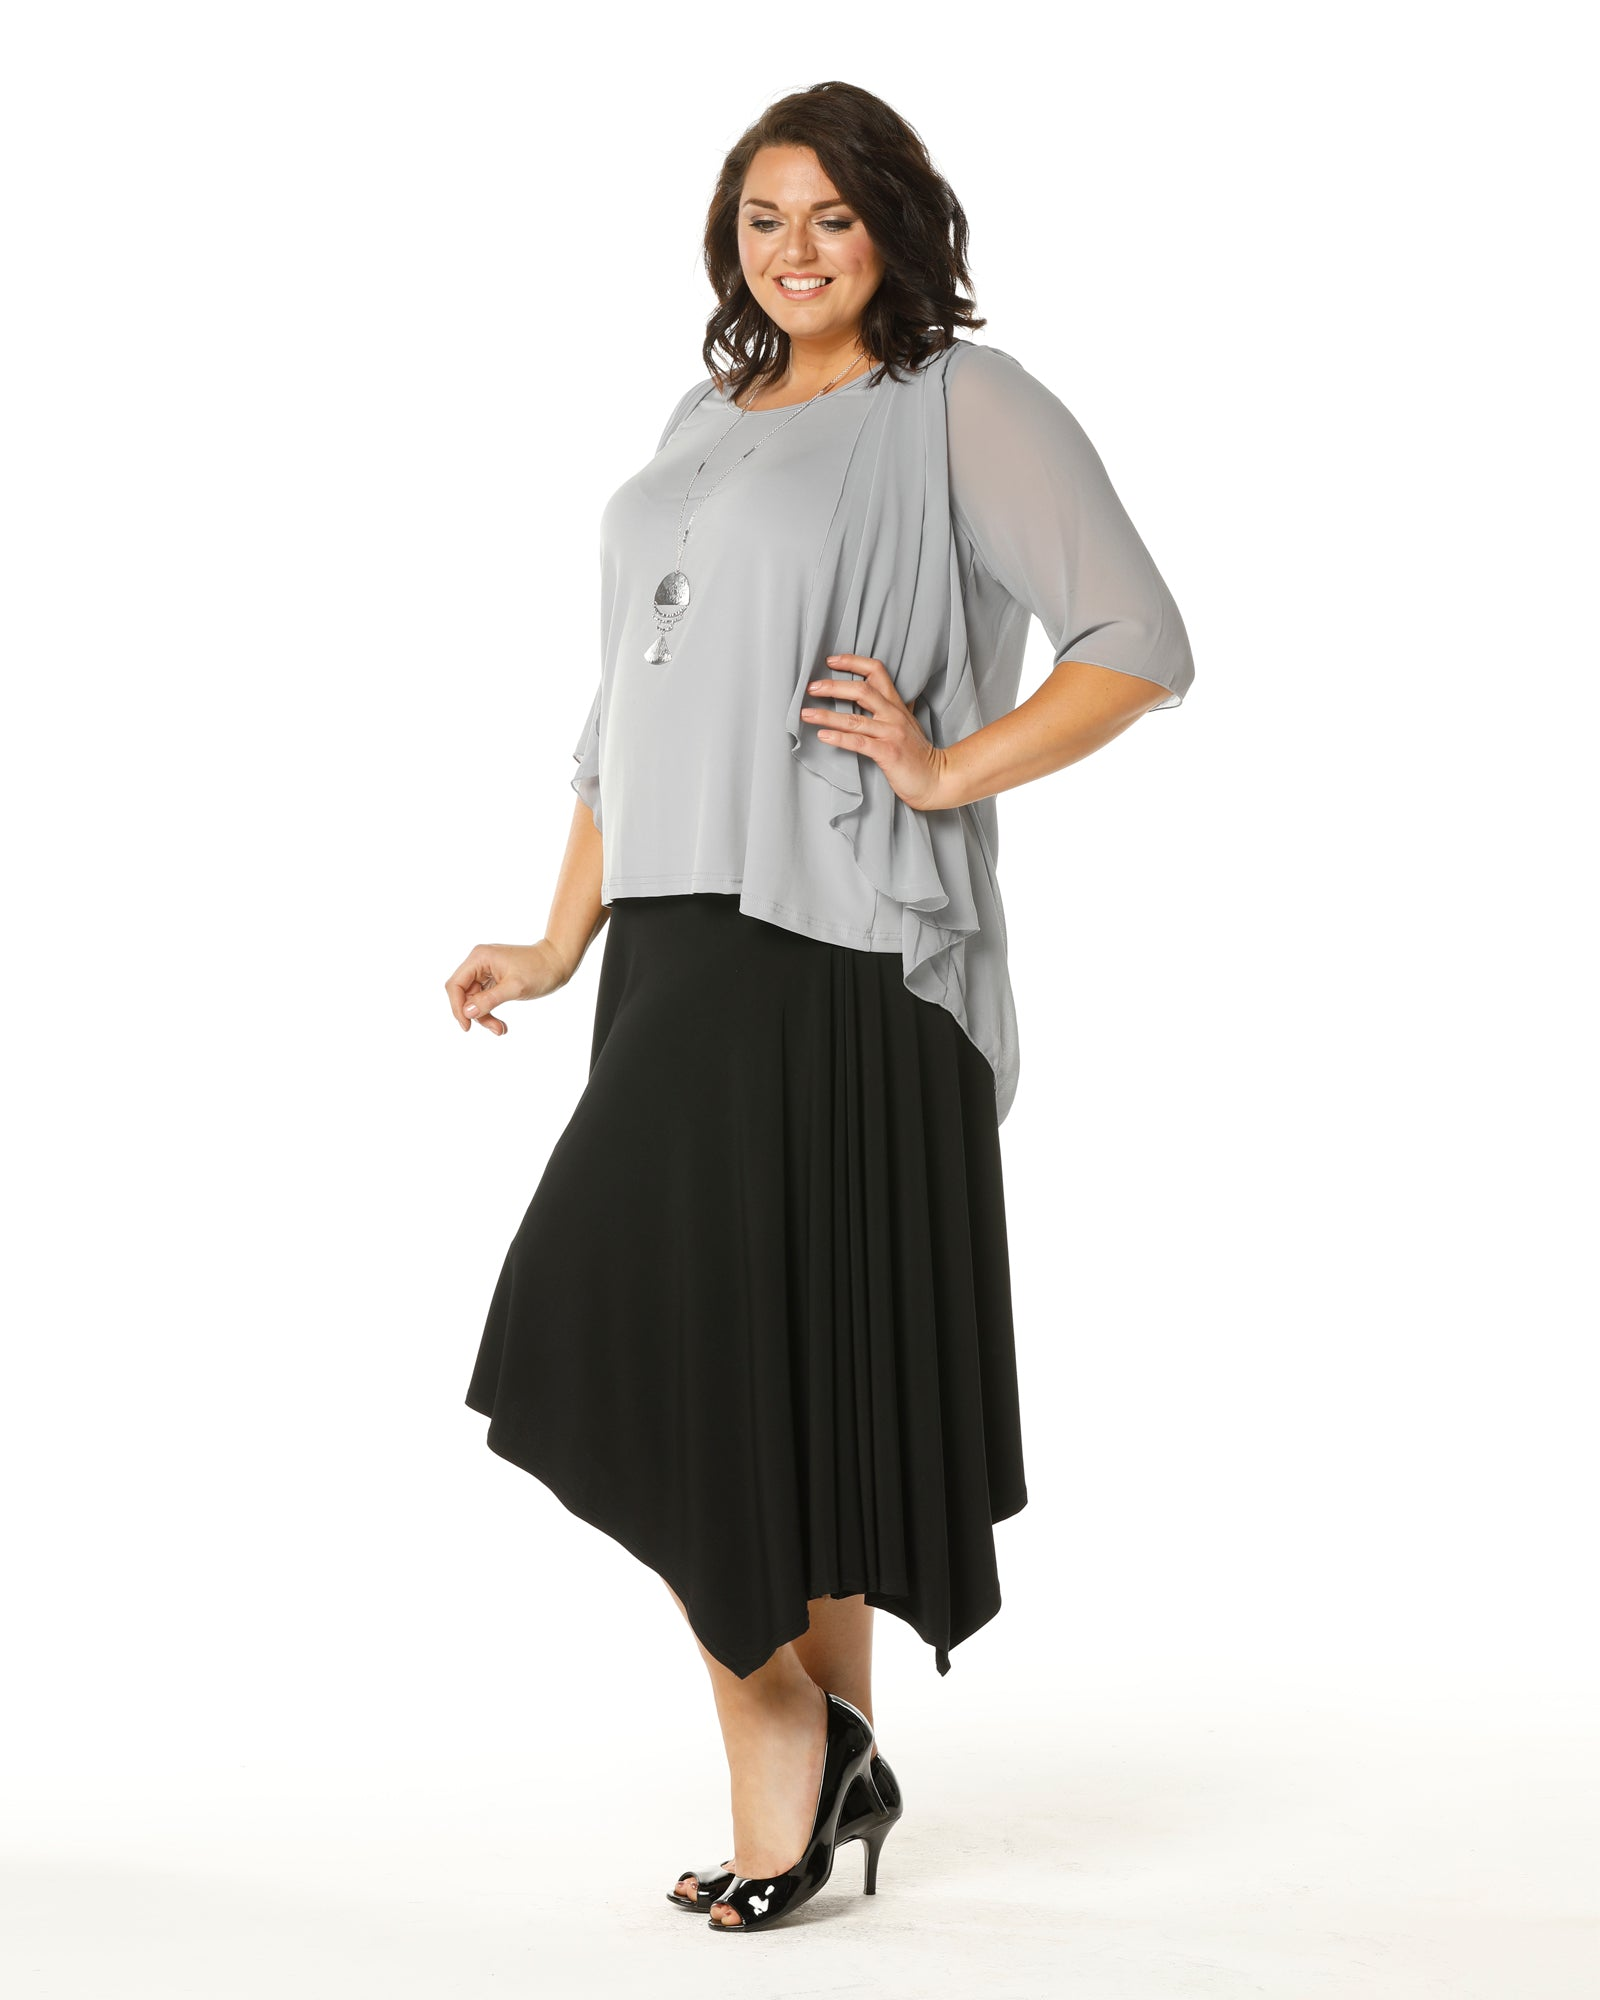 Linda 2 In 1 Tunic - Silver Grey LAST SIZE 26 ONLY